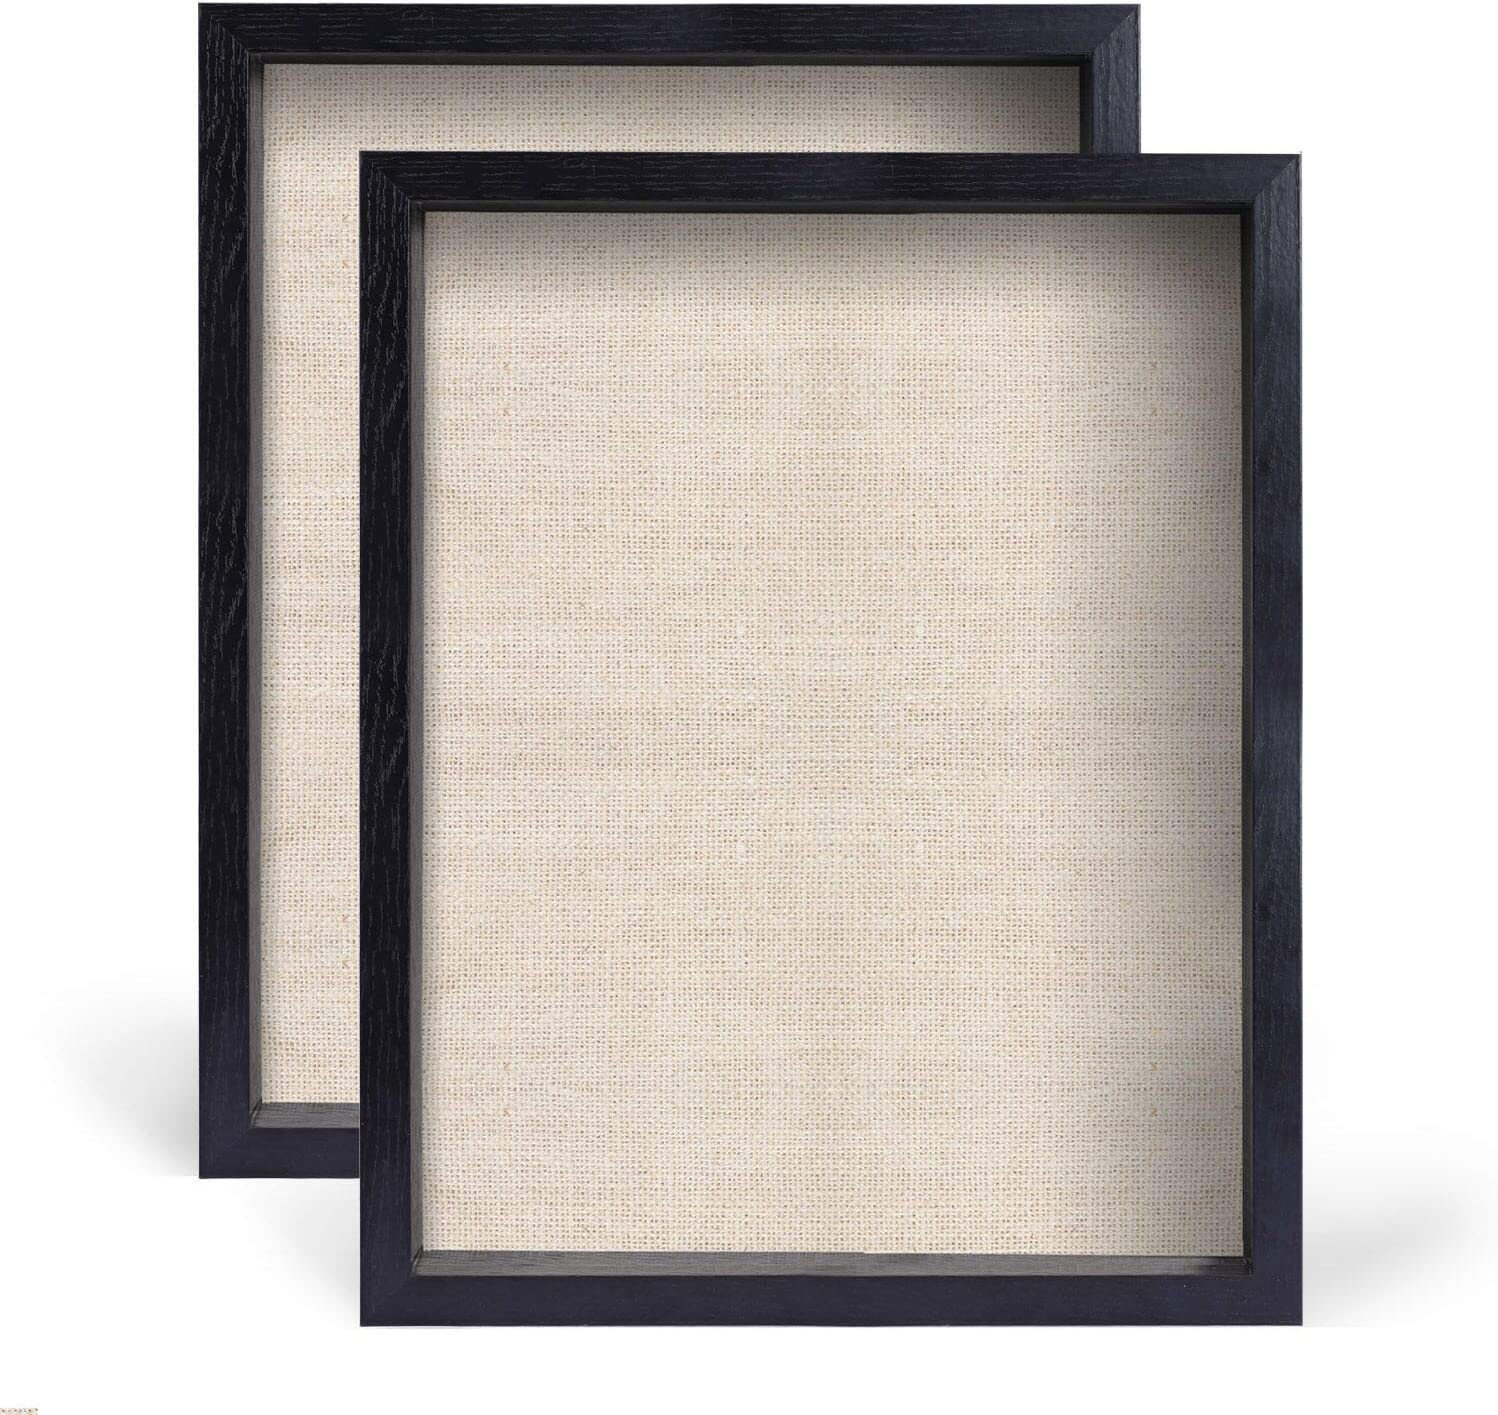 Photos Linen Board Wood Showcase Display Shadow Box Frame Medals Keep Awards 2 Pack Tickets Pictures Frames